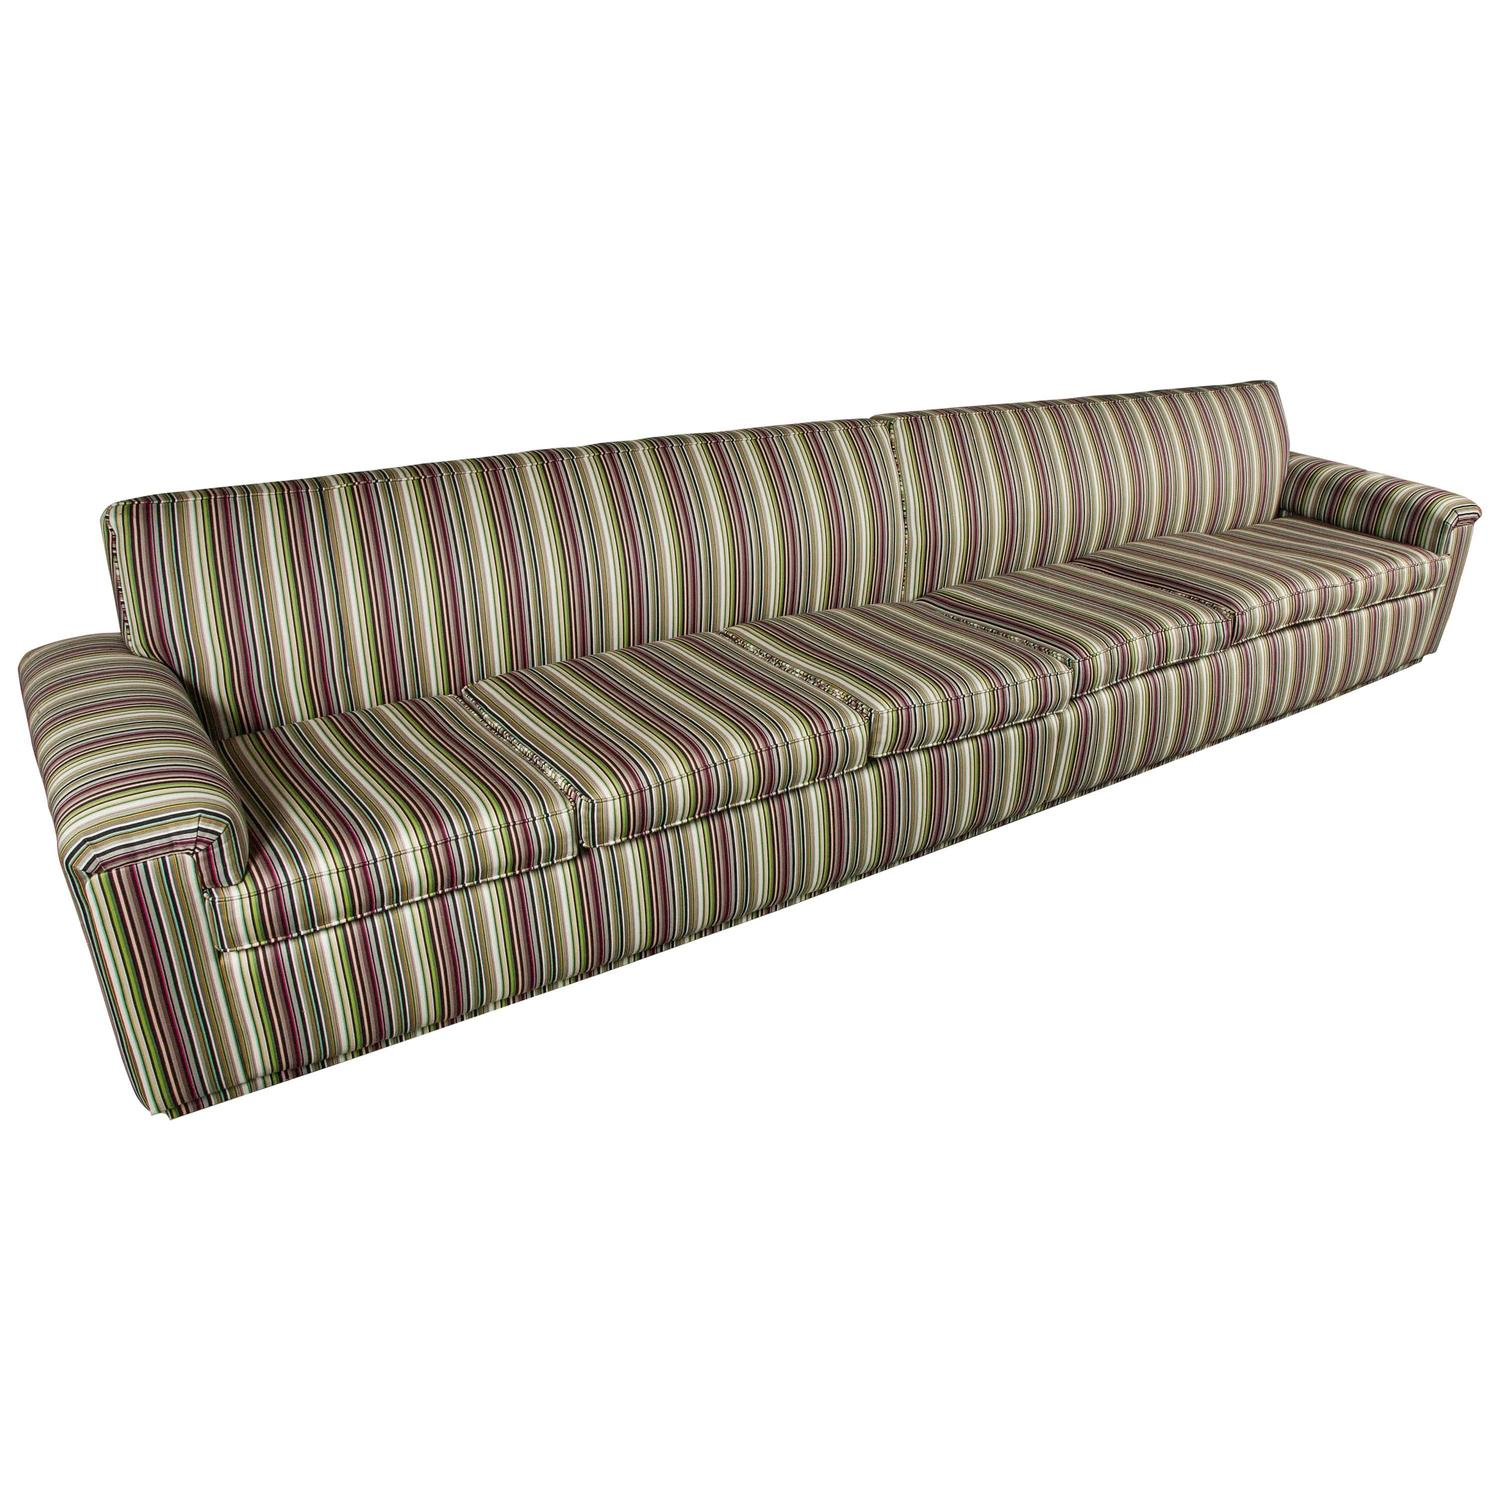 Unique long sofa by shaun clarkson in brightly striped for Long couches for sale